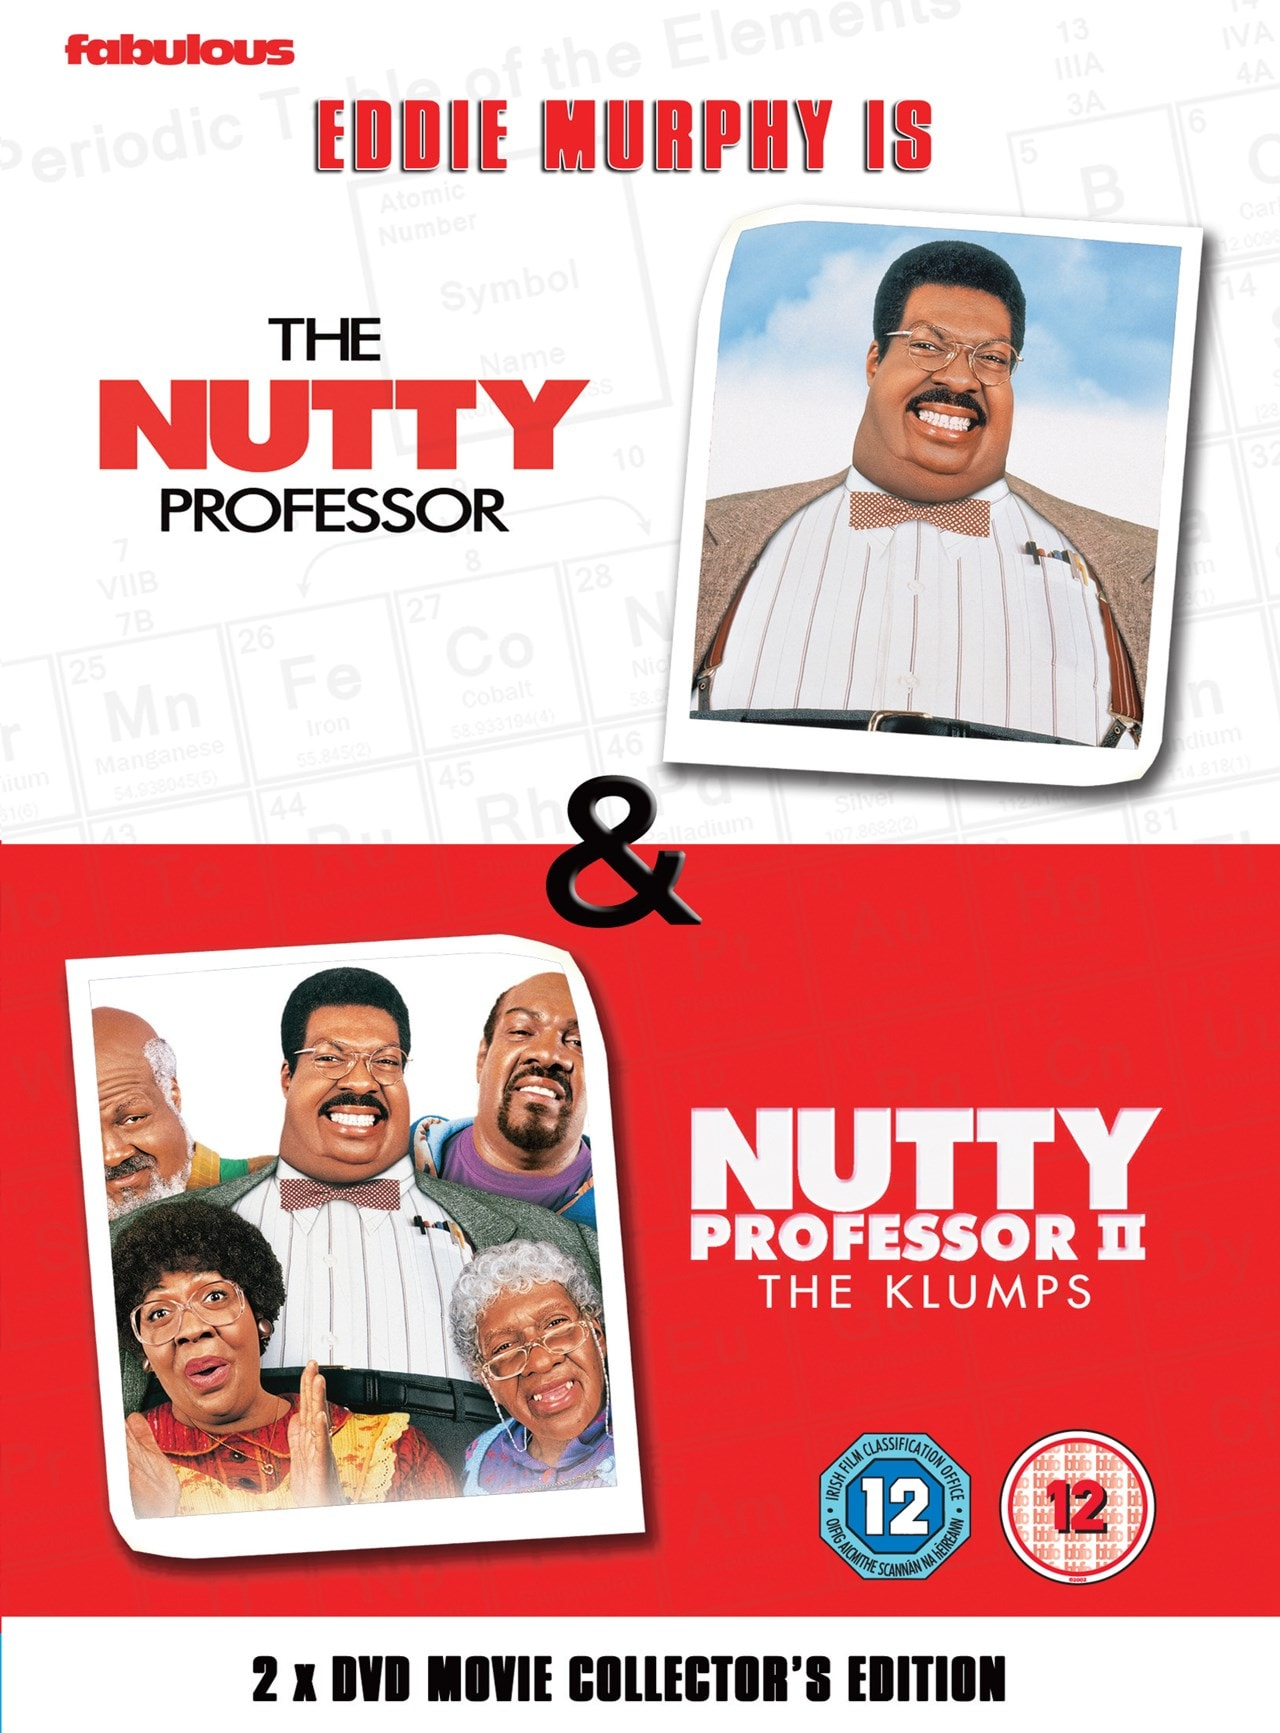 The Nutty Professor/The Nutty Professor 2 - 1